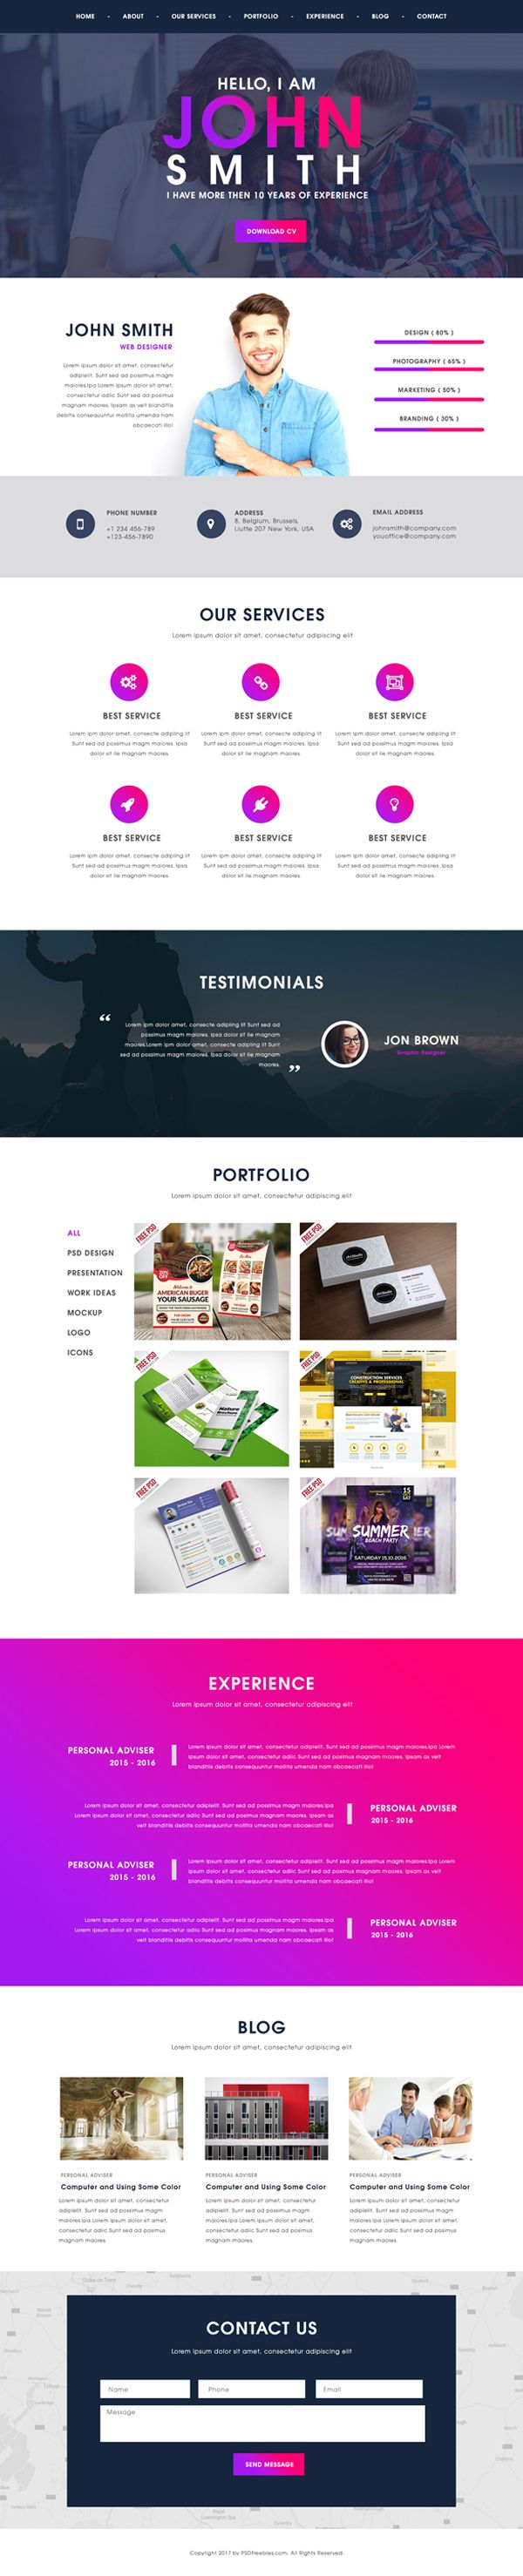 Free Creative One Page Portfolio Website Template PSD #webtemplates #freepsdtemplates #freewebtemplates #freebies #websitedesign